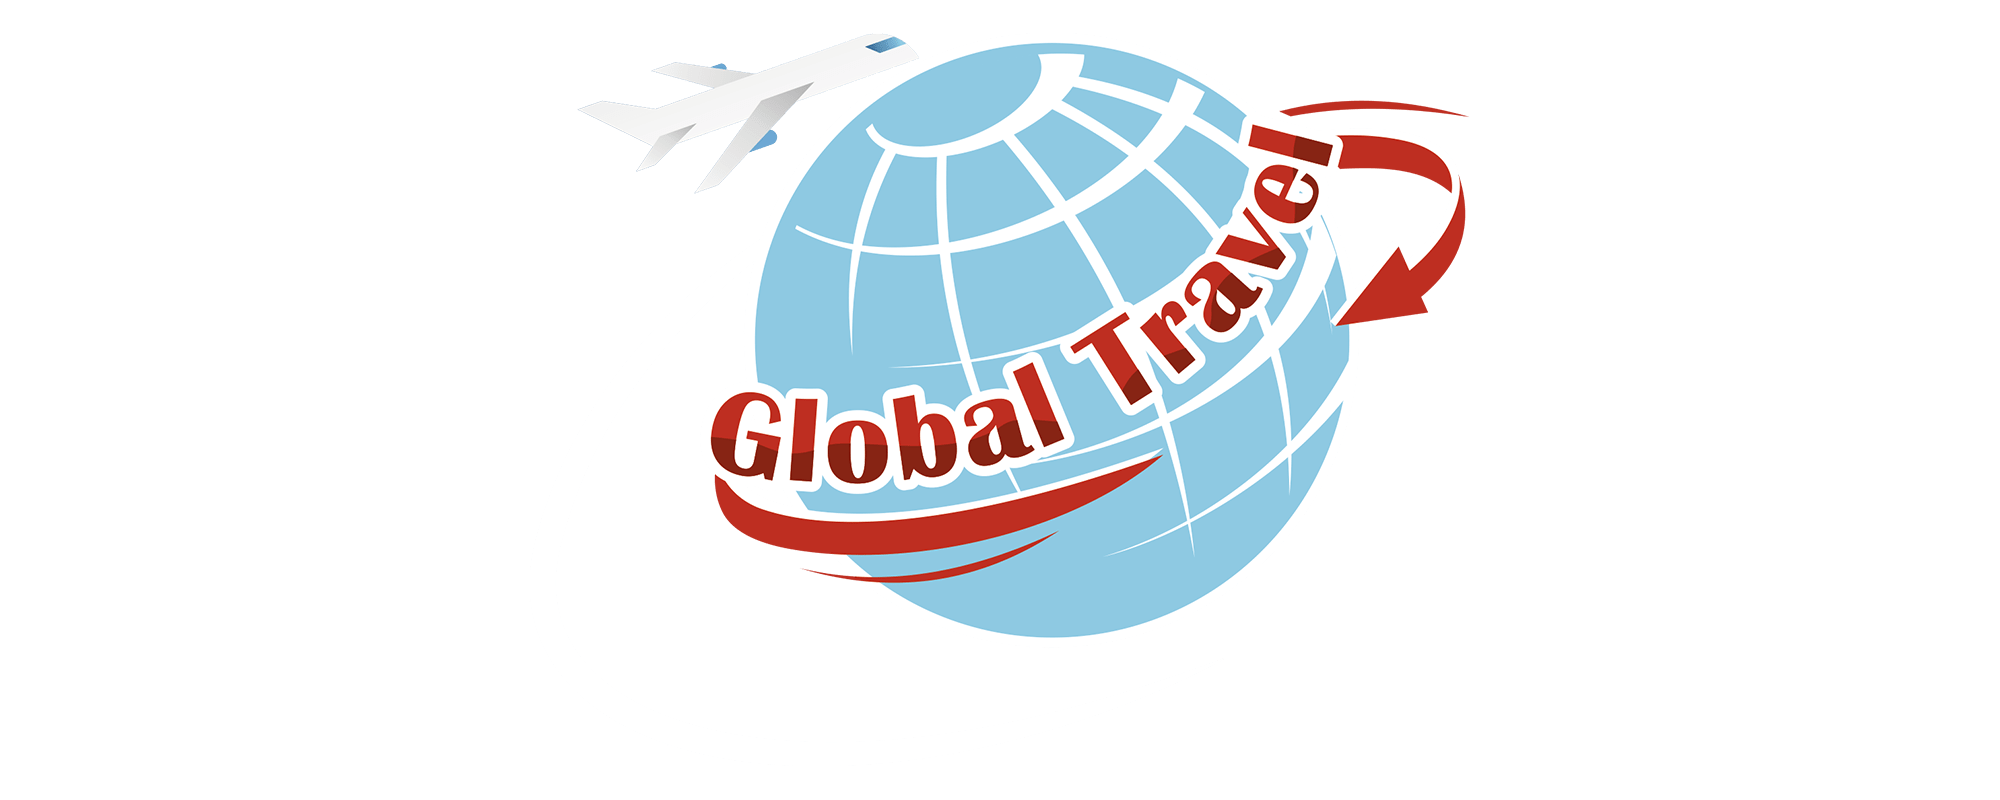 Global Travel